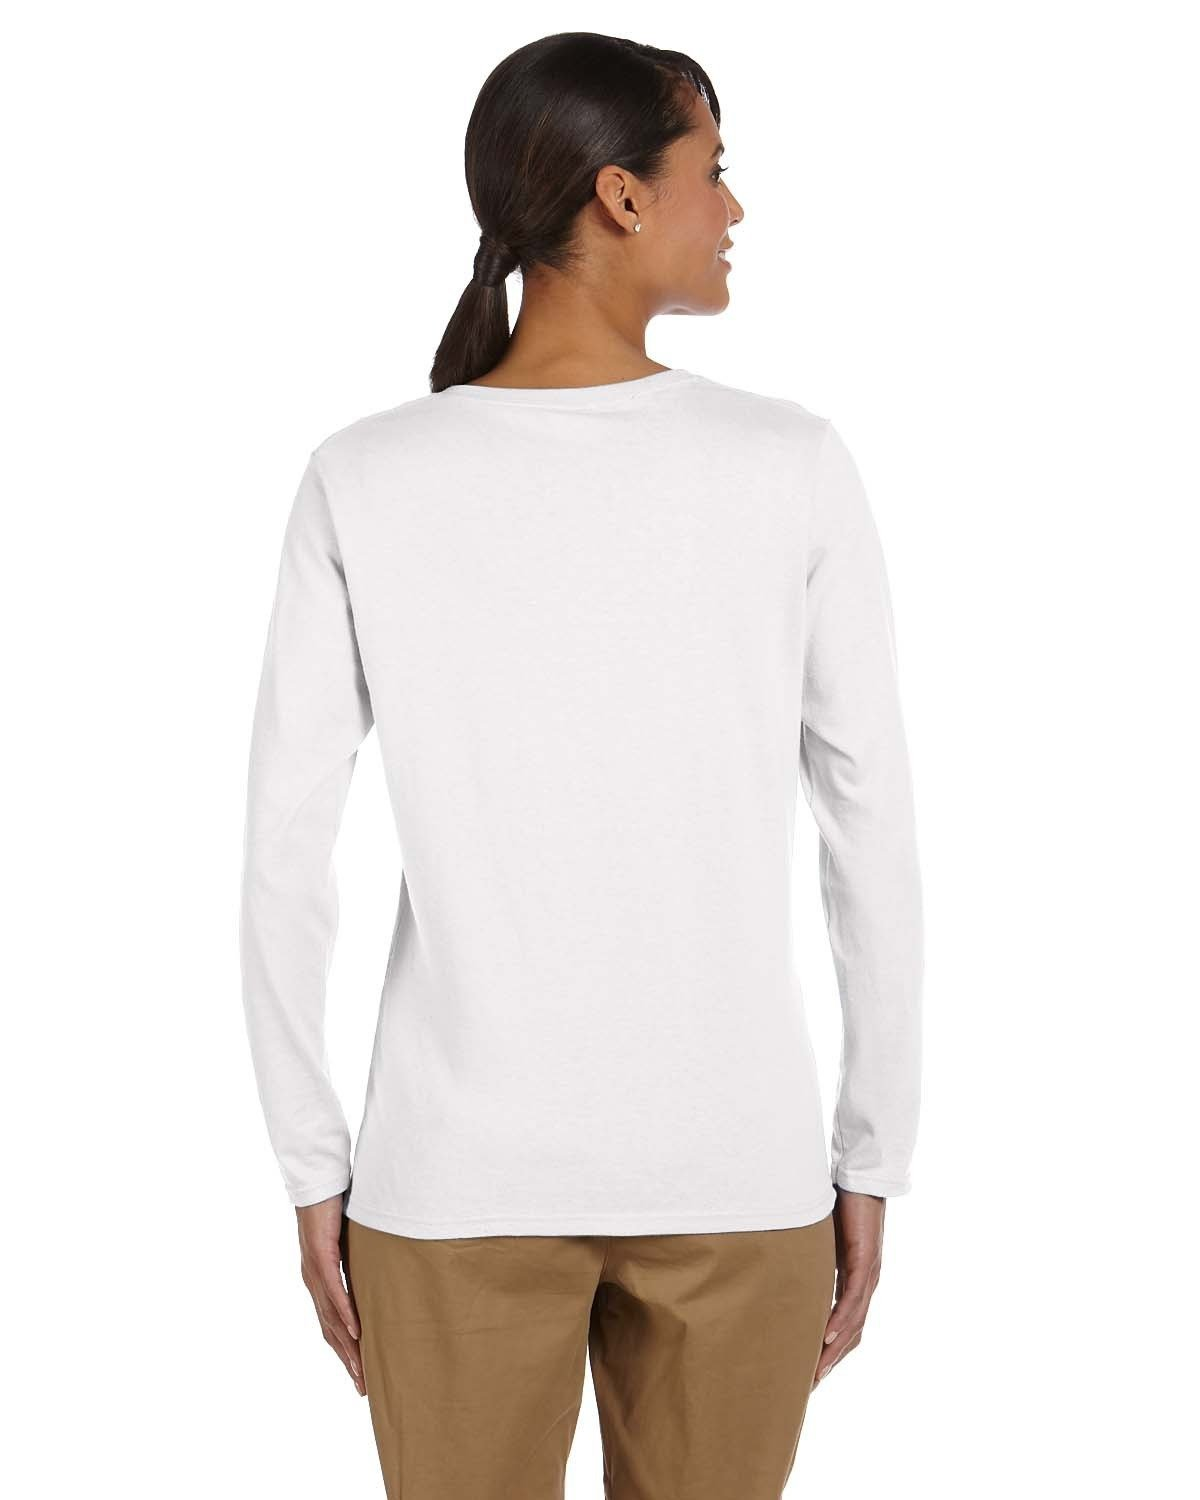 Ladies Gildan Long Sleeve T-shirt